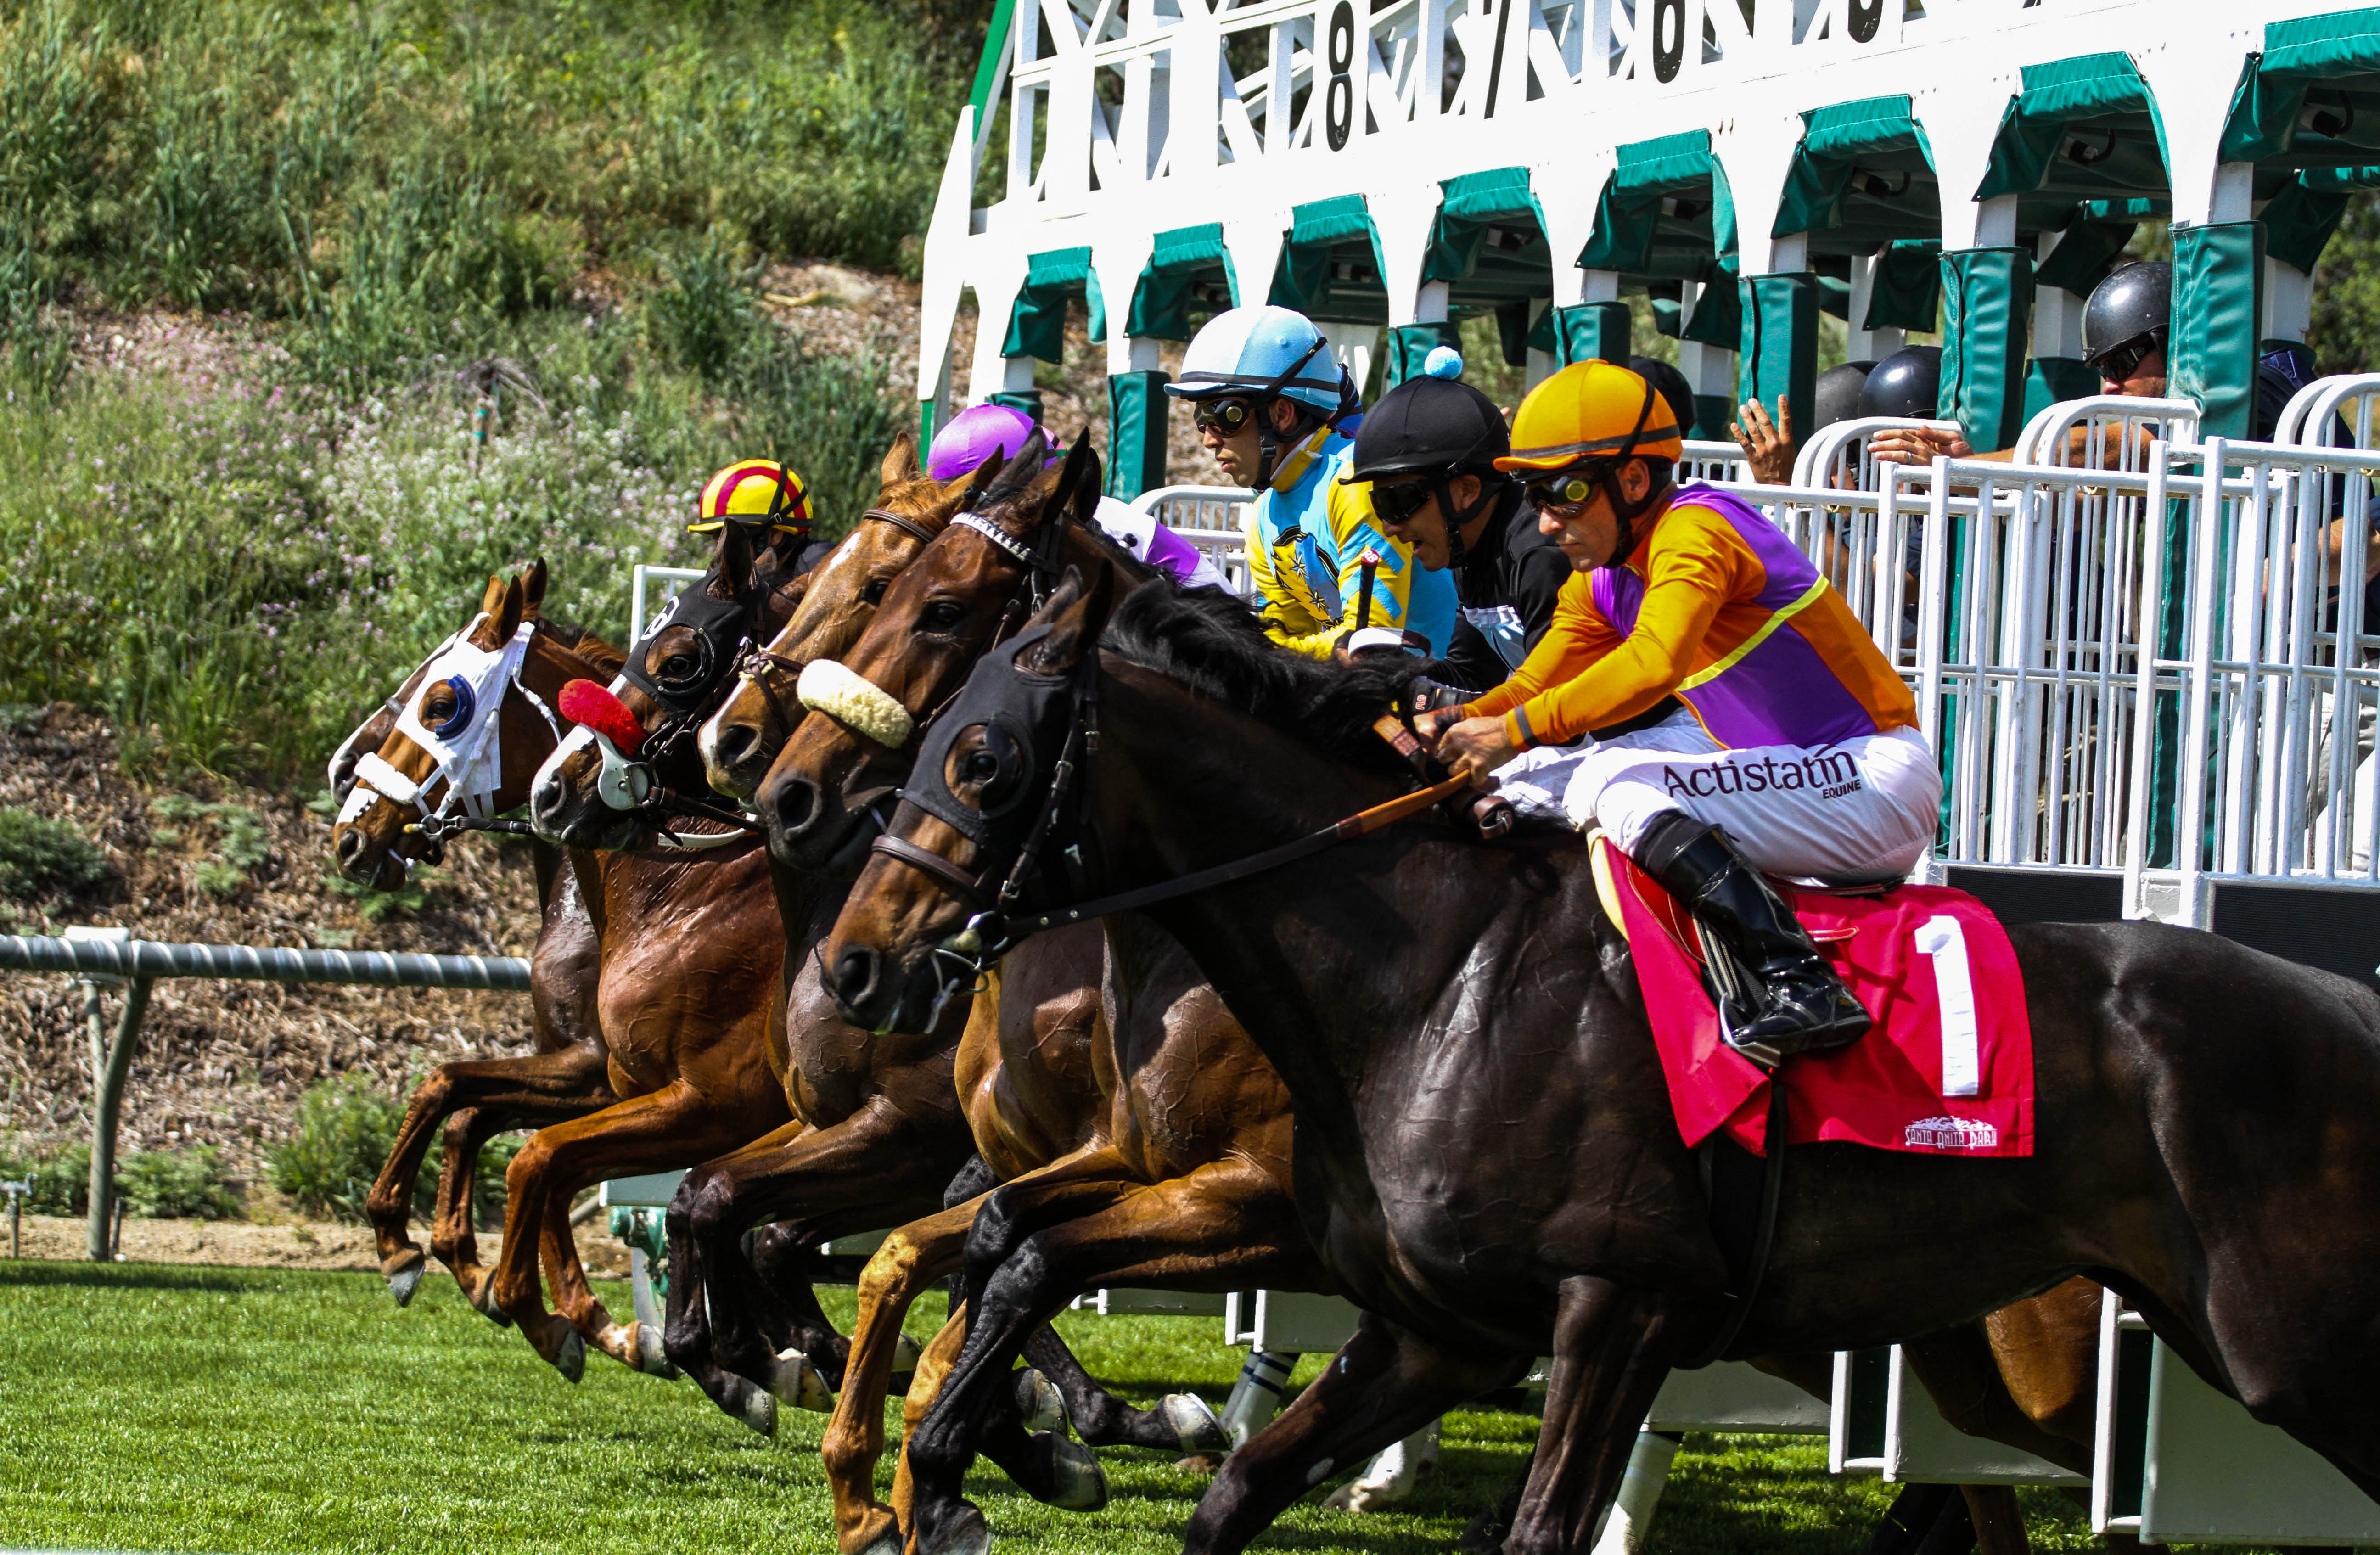 Jeff Siegel's Blog: Santa Anita Analysis March 25, 2016